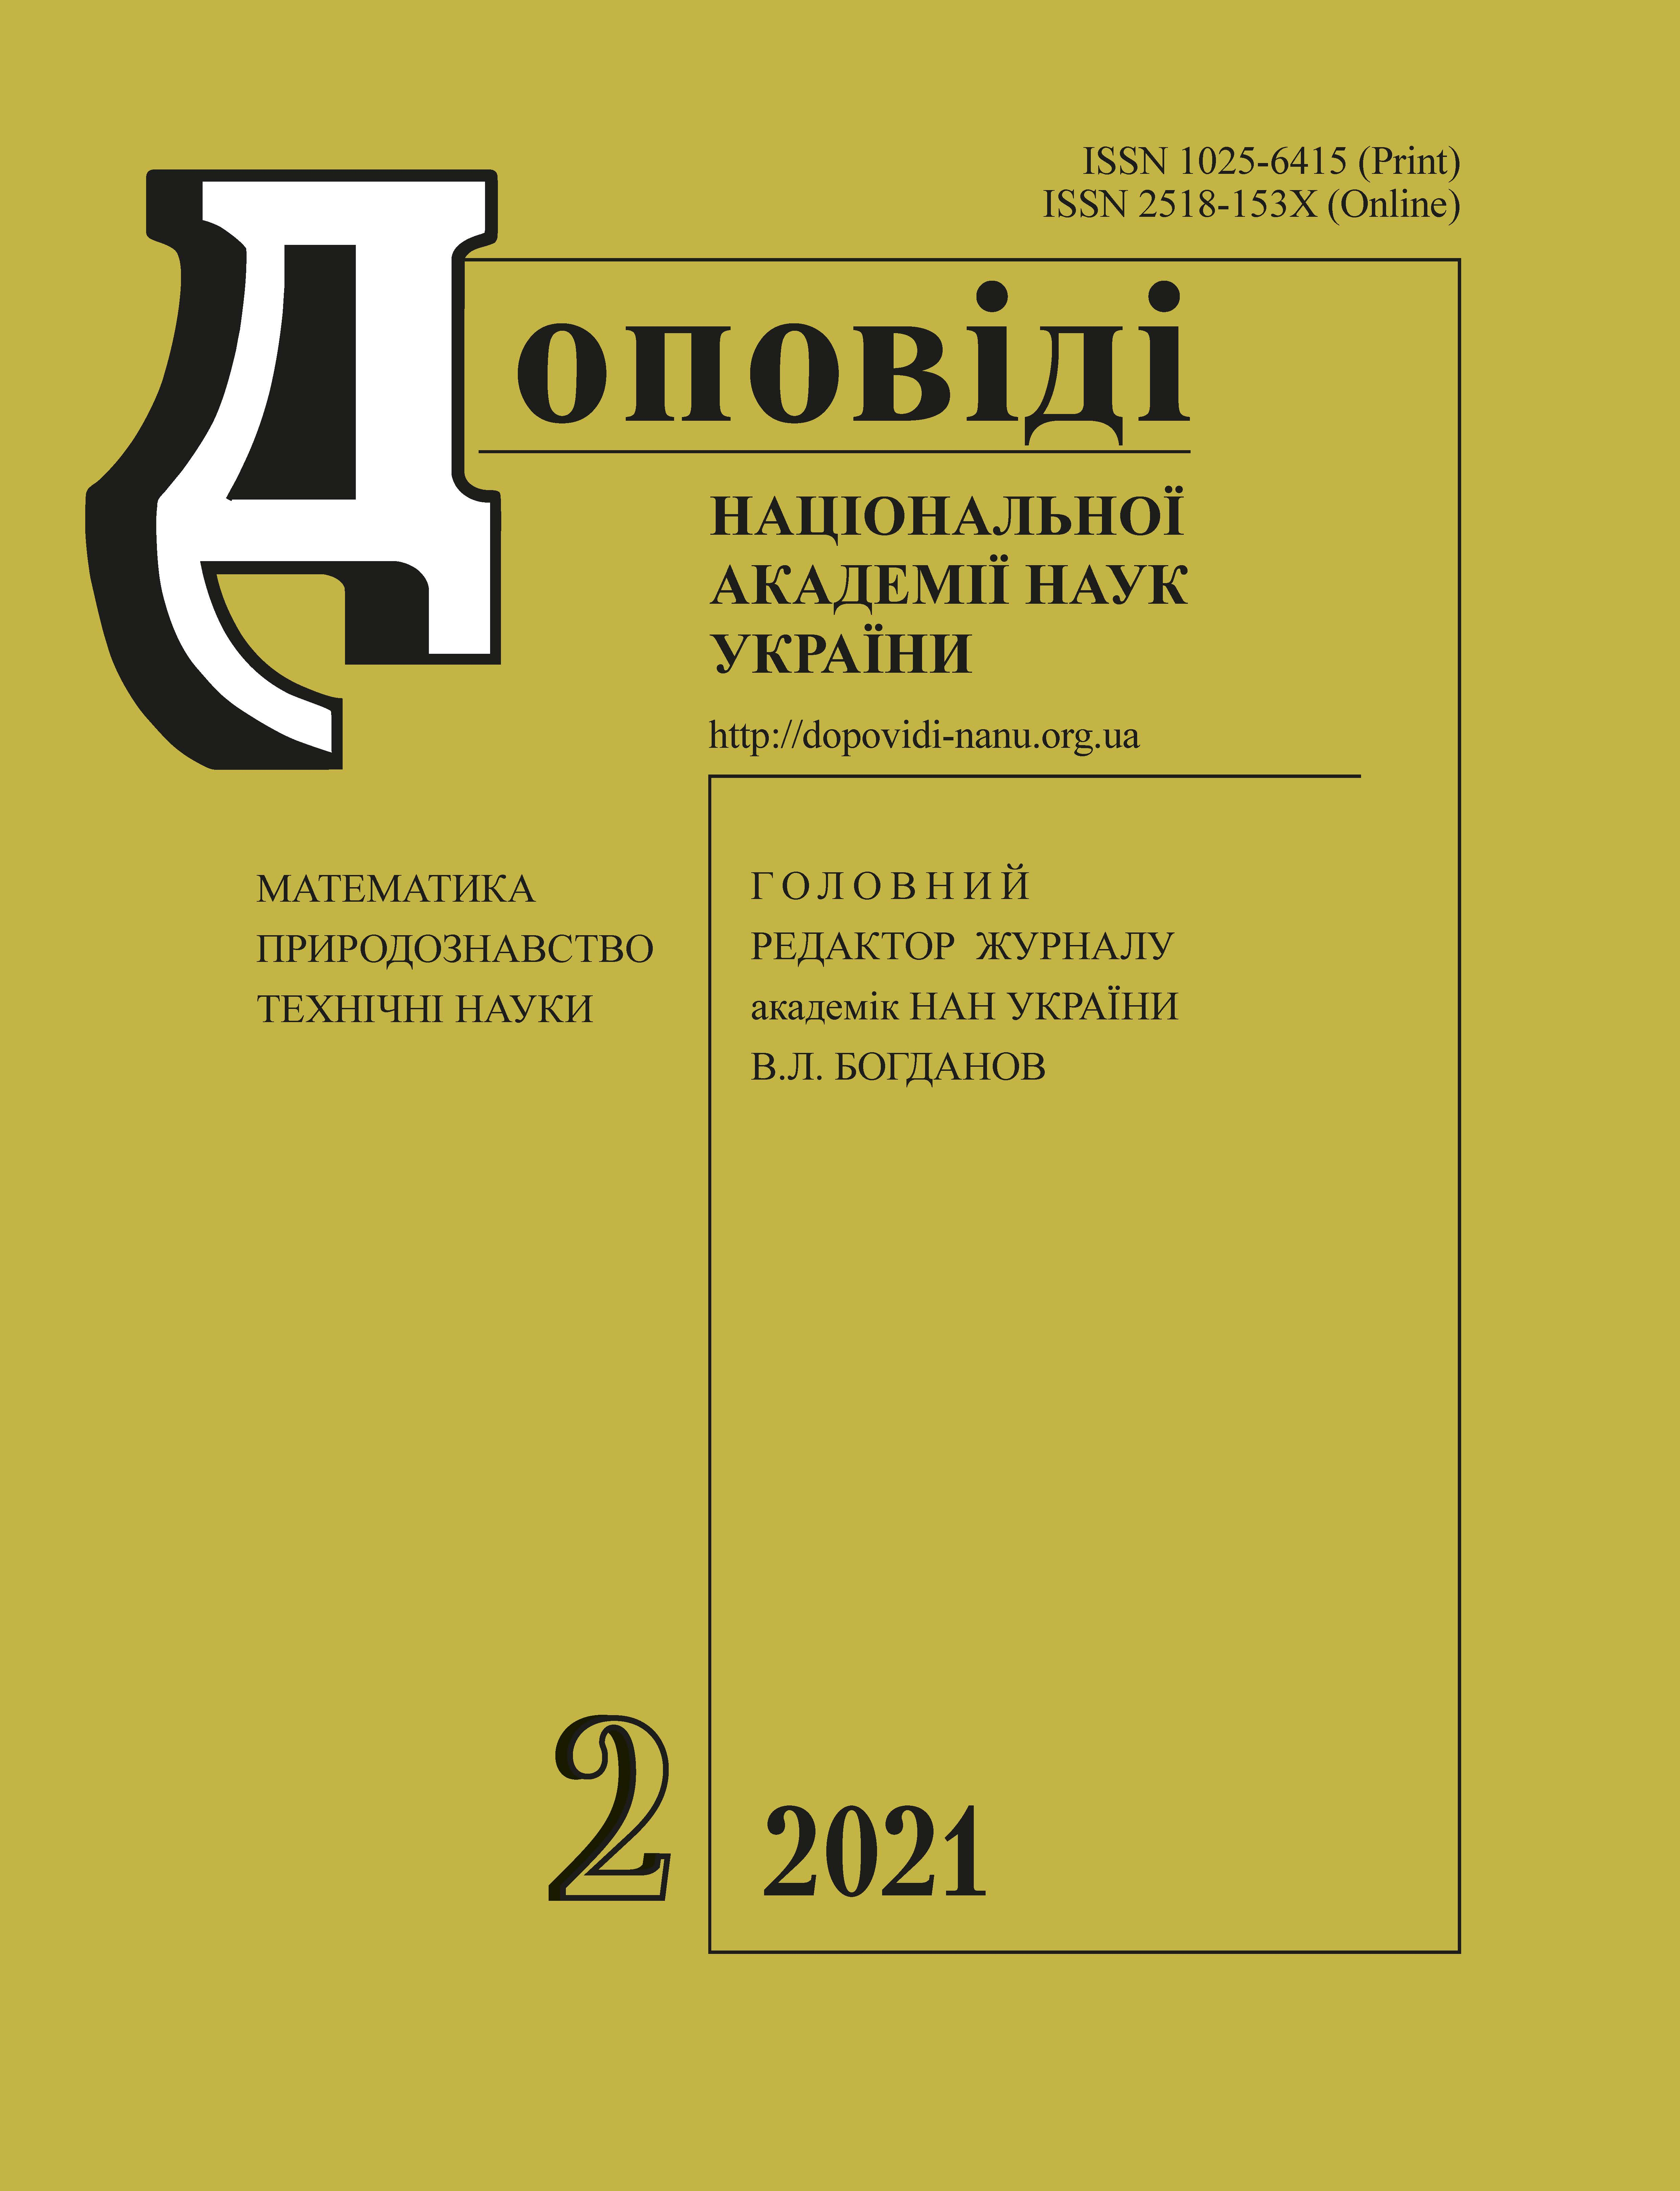 View No. 2 (2021): Reports of the National Academy of Sciences of Ukraine